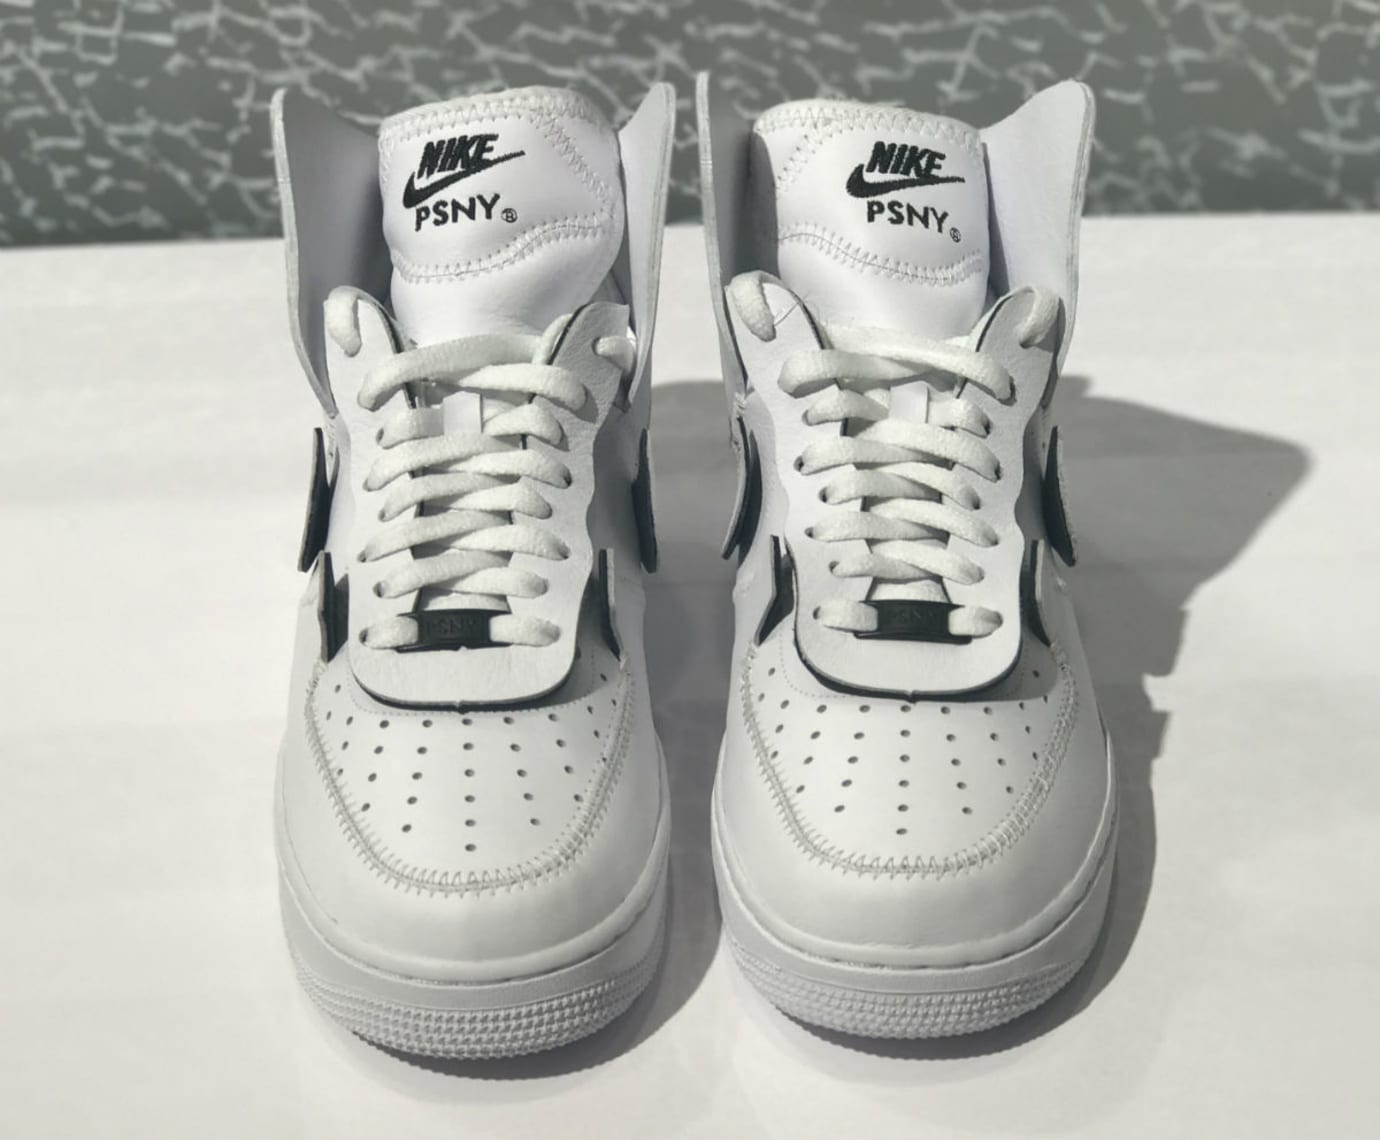 PSNY x Nike Air Force 1 High Front